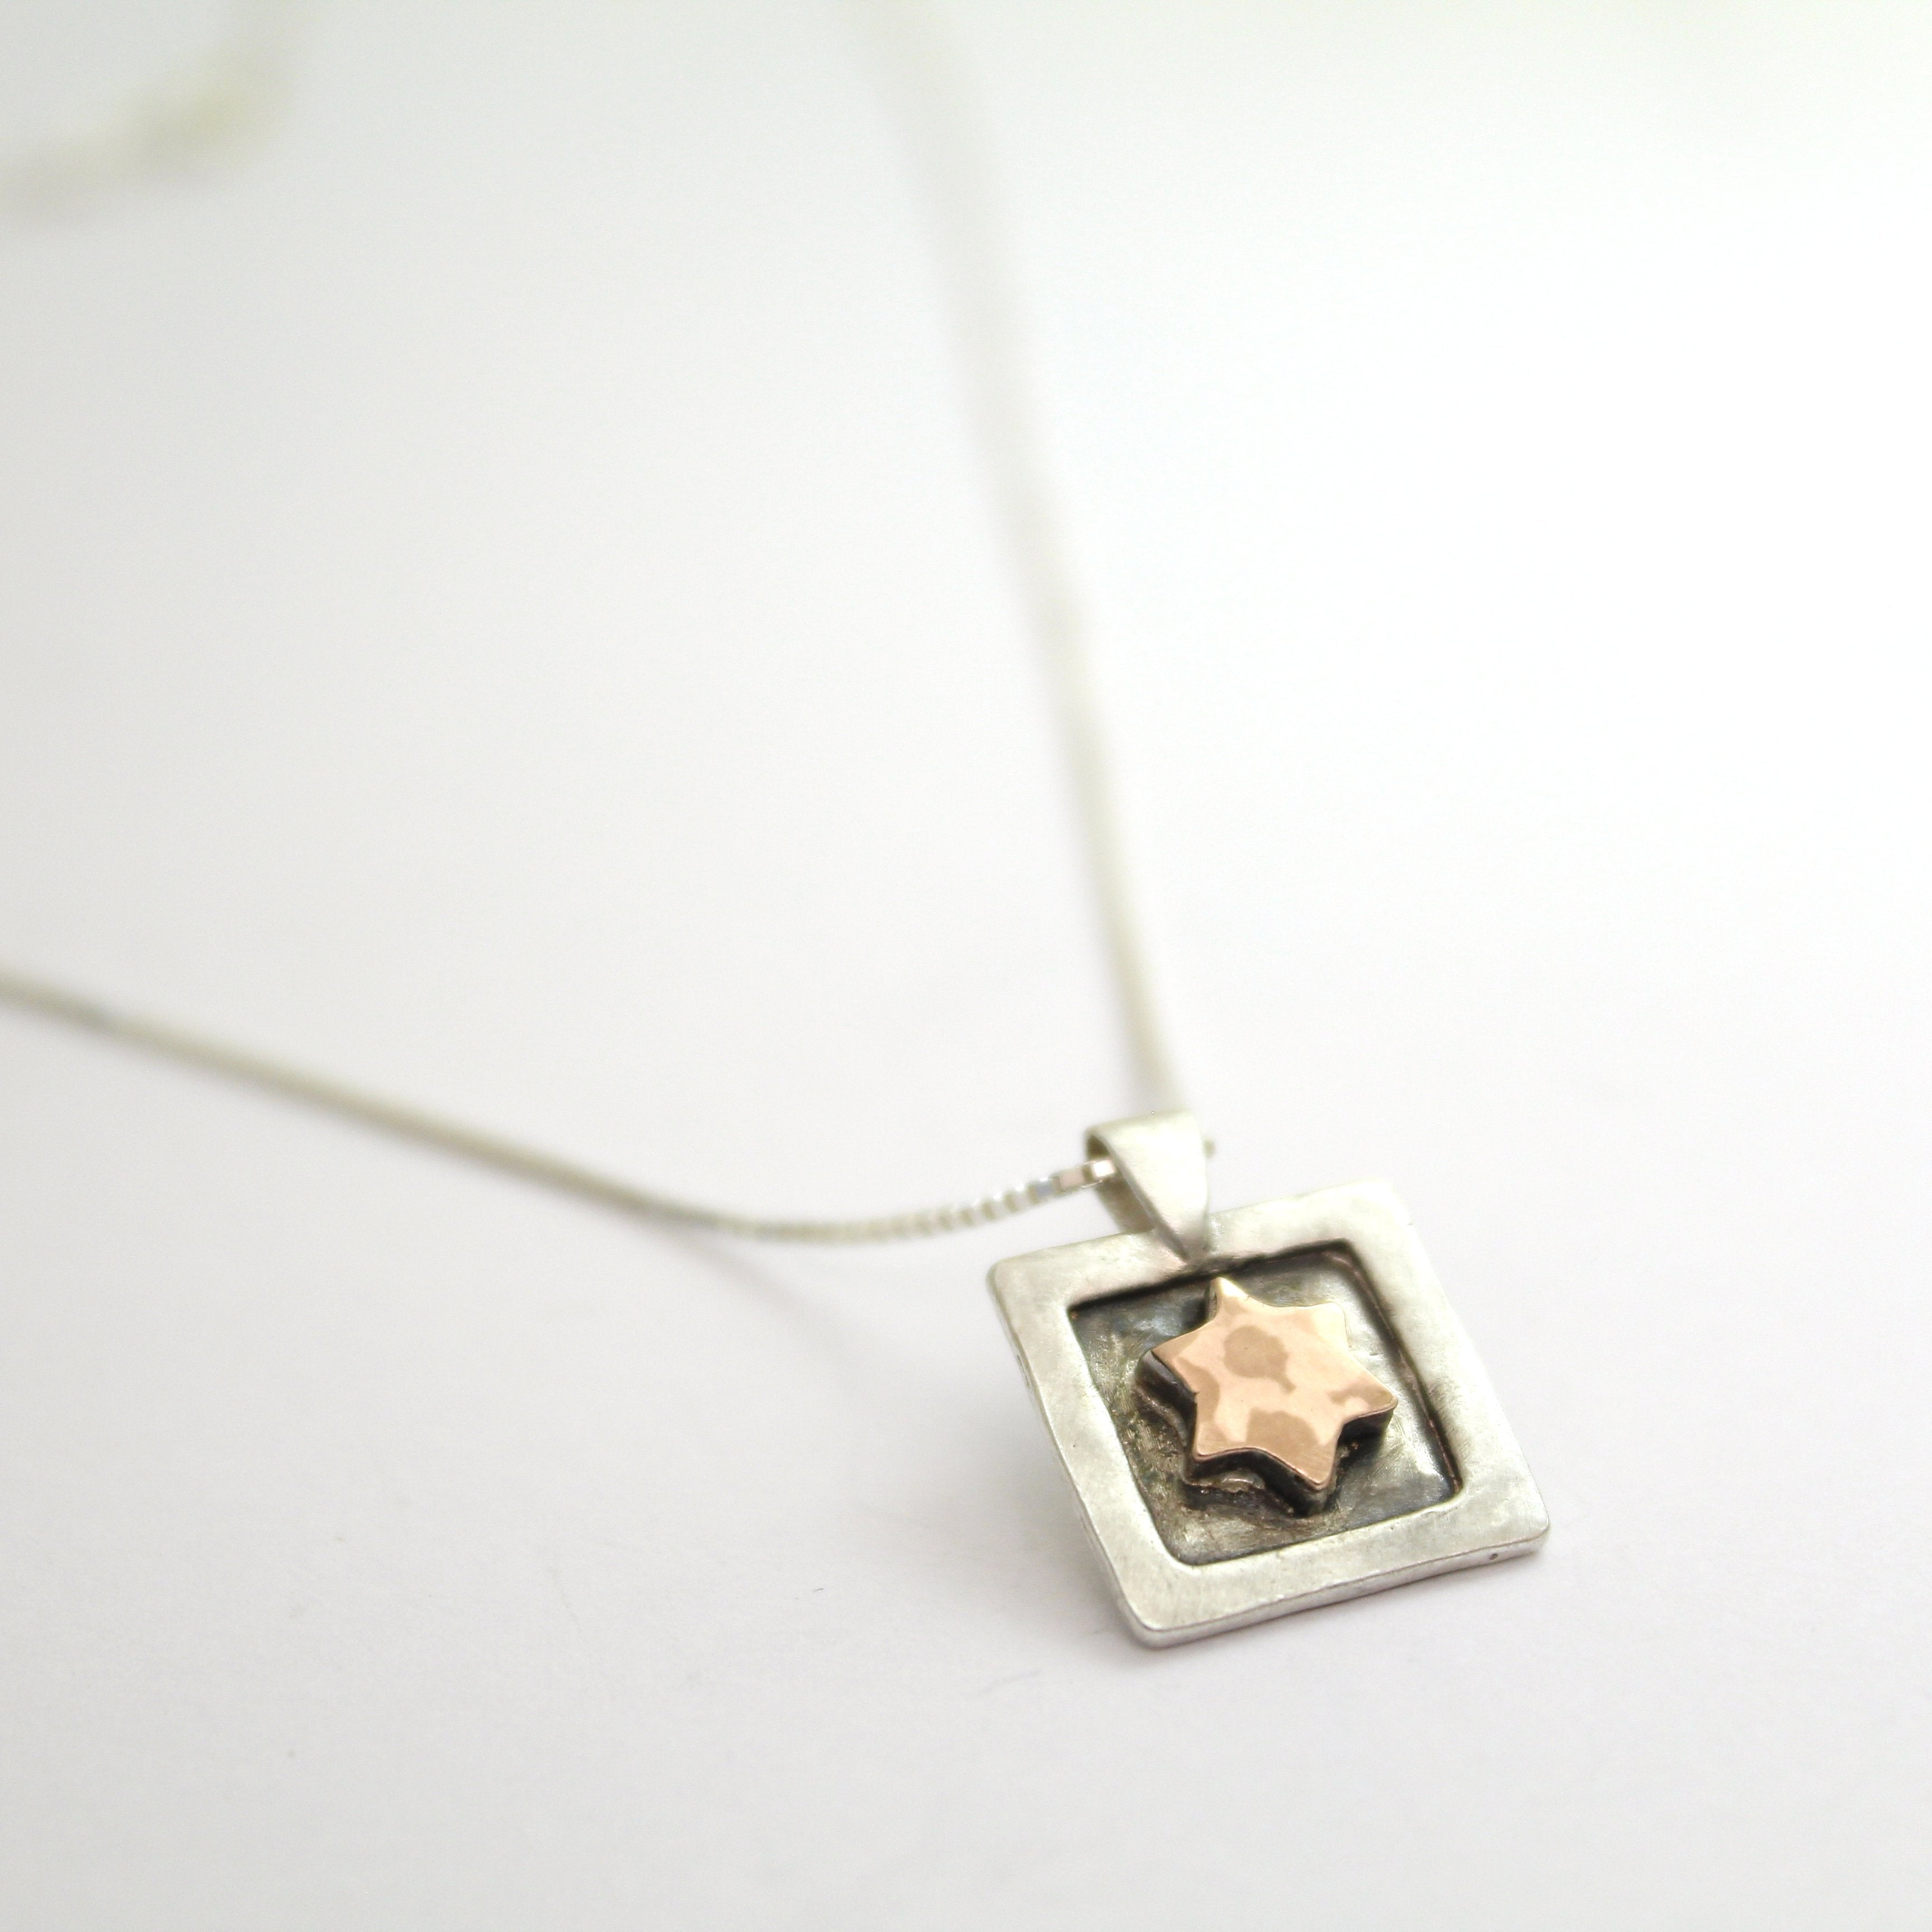 Star of David - Silver & Red Gold Necklace - Shulamit Kanter Official Store